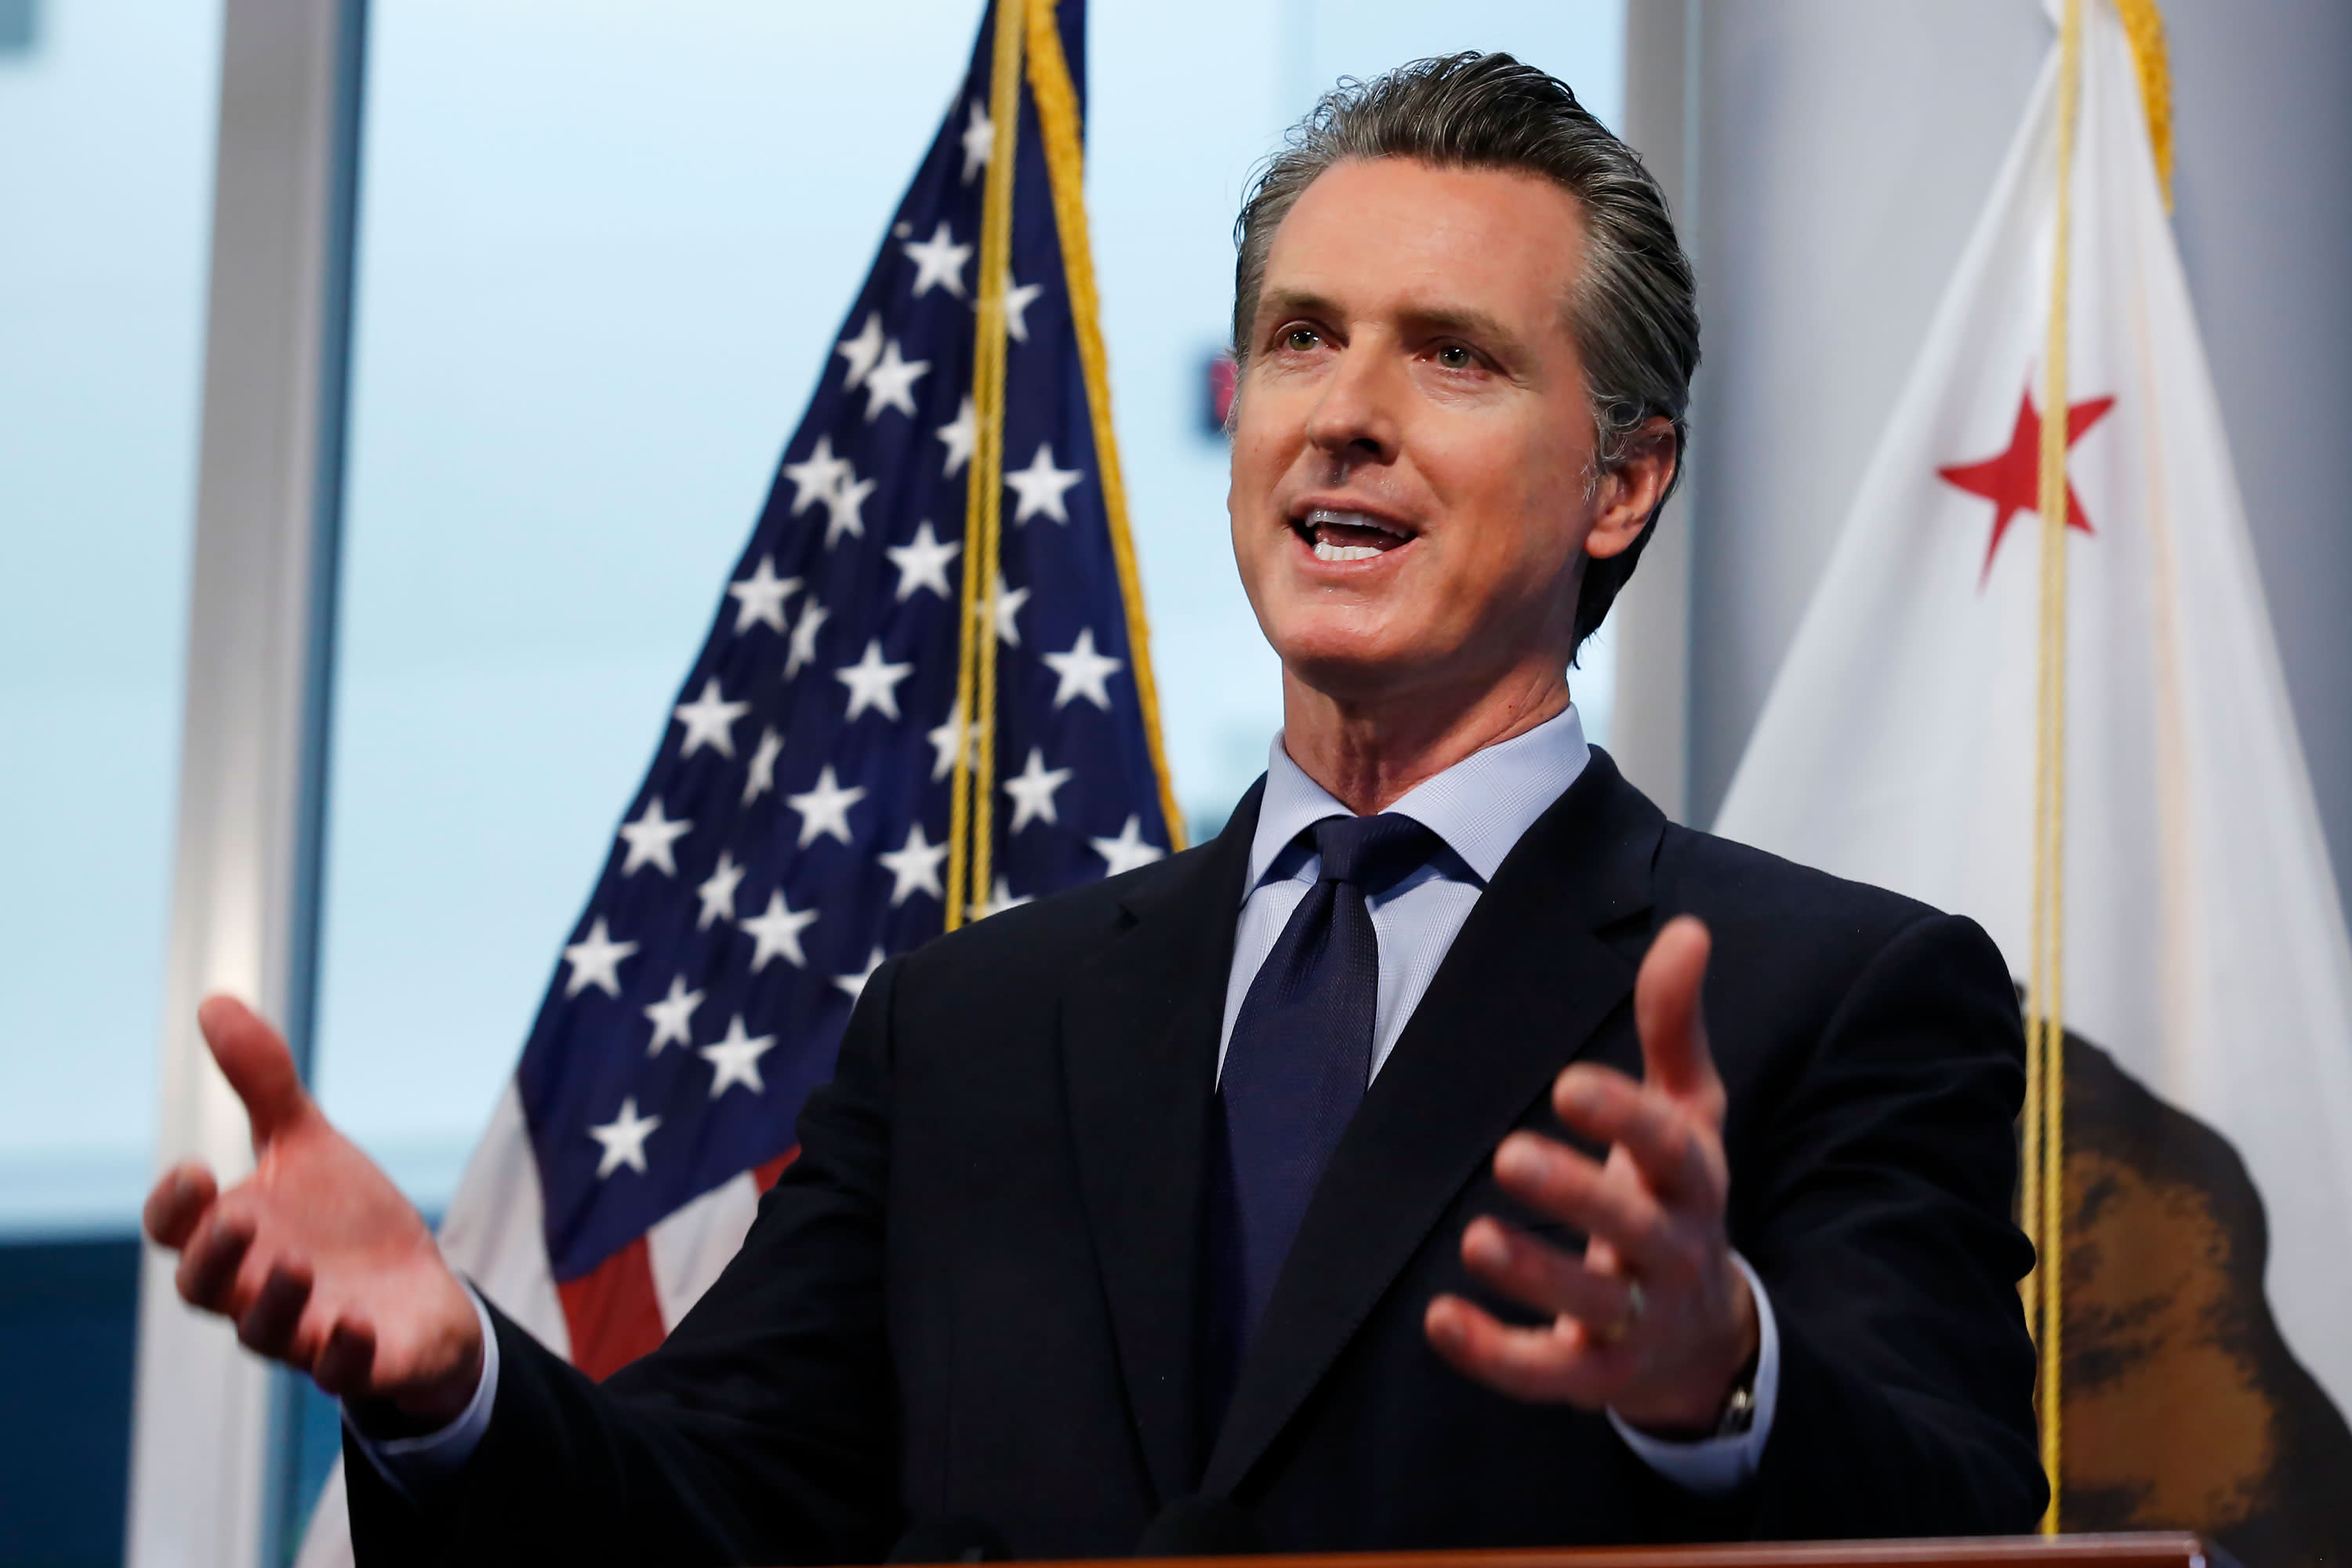 Newsom to impose regional stay-at-home order to ease hospitalizations